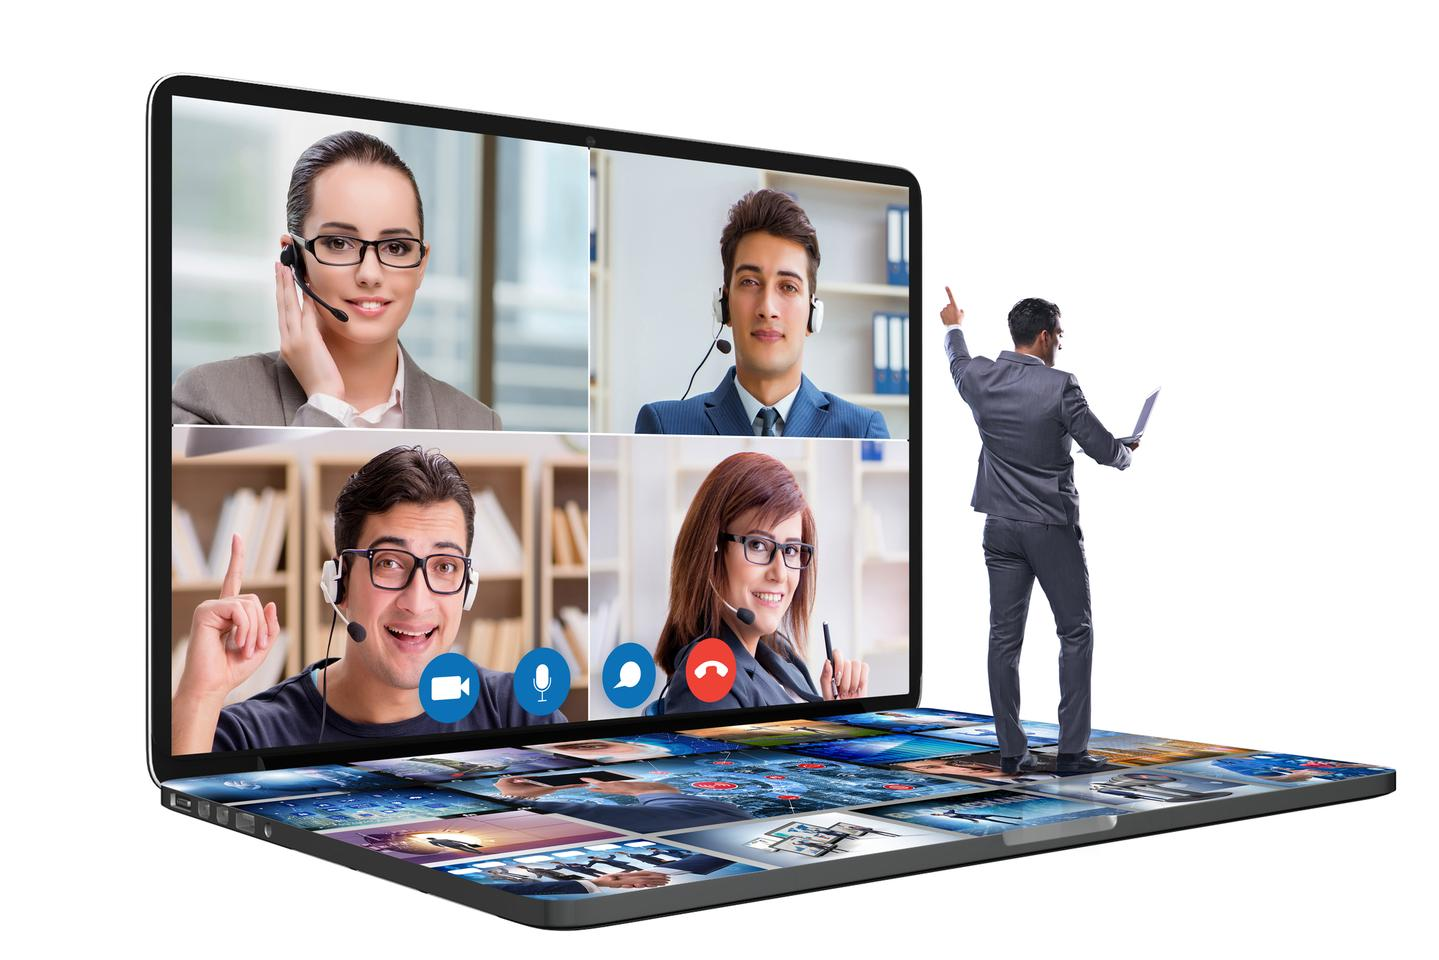 Could switching off the video on that Zoom call help a group work more effectively?